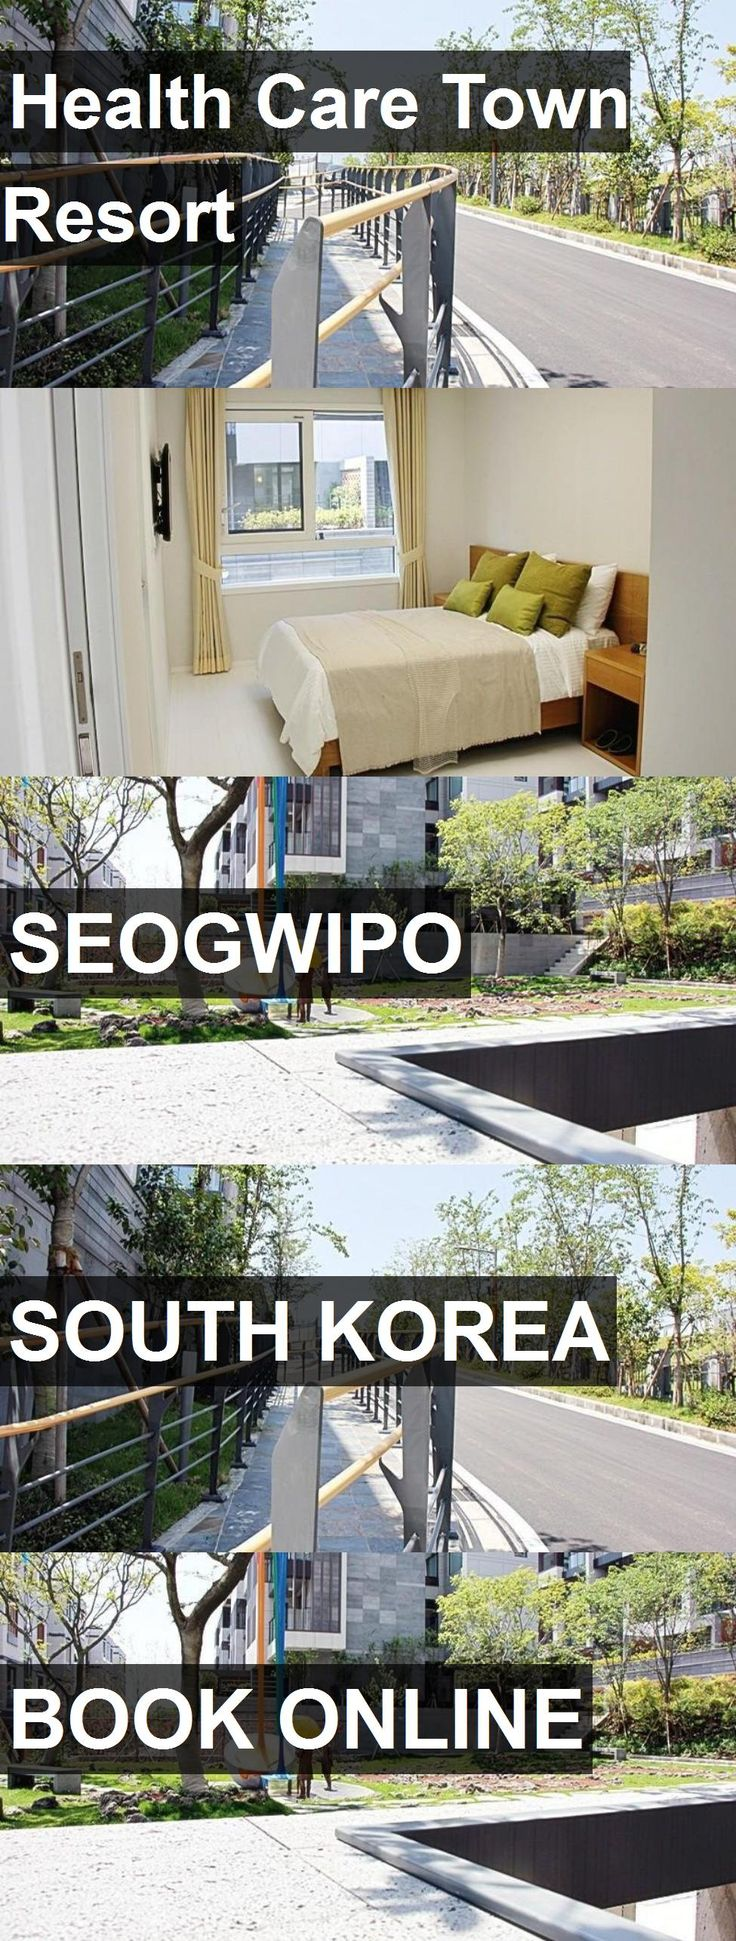 Hotel Health Care Town Resort in Seogwipo, South Korea. For more information, photos, reviews and best prices please follow the link. #SouthKorea #Seogwipo #travel #vacation #hotel